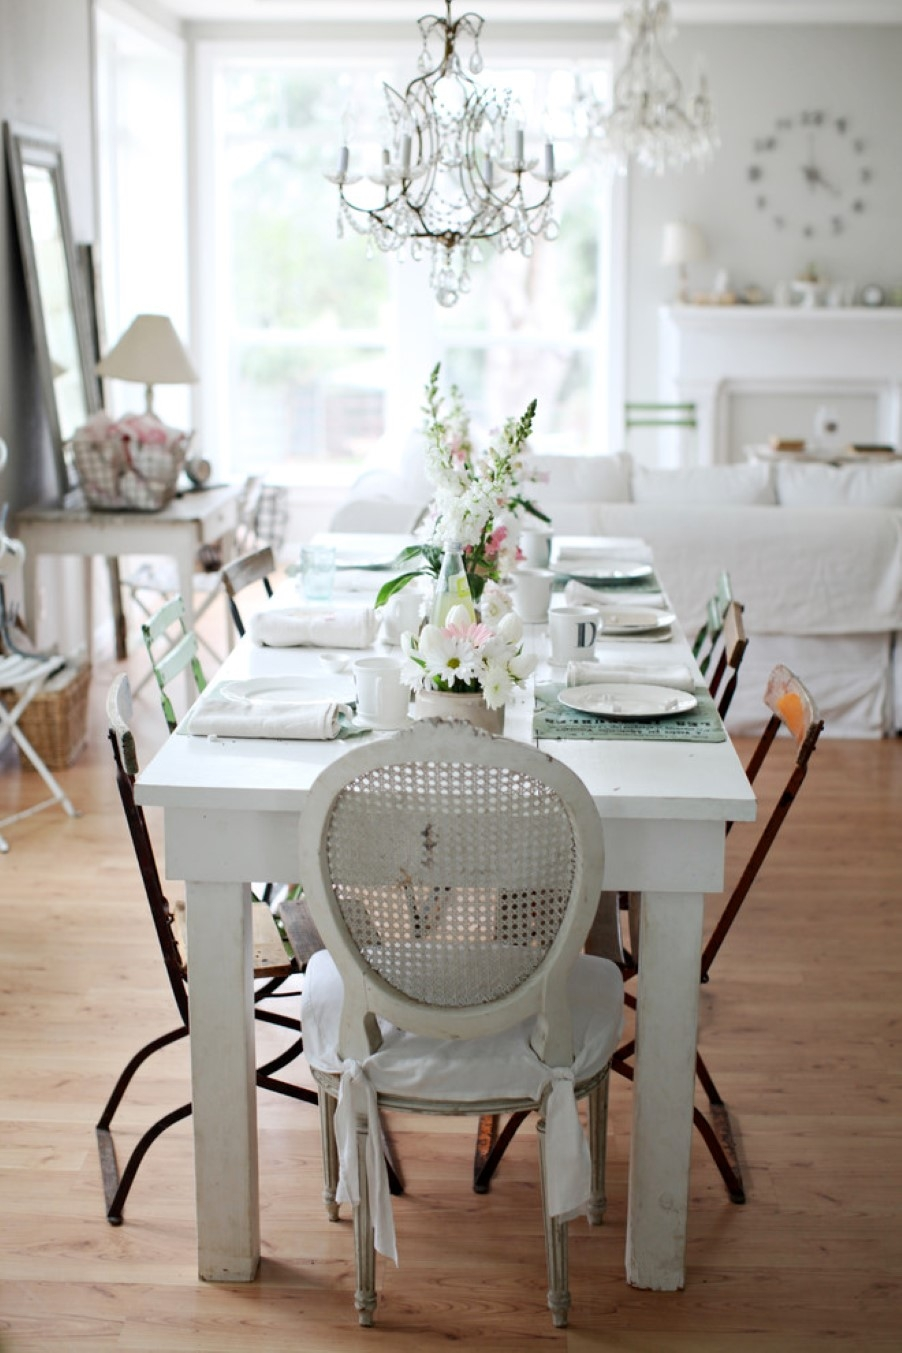 Living Room Small Shab Chic Living Room With Centerpiece Decor Intended For Small Shabby Chic Chandelier (Image 10 of 15)